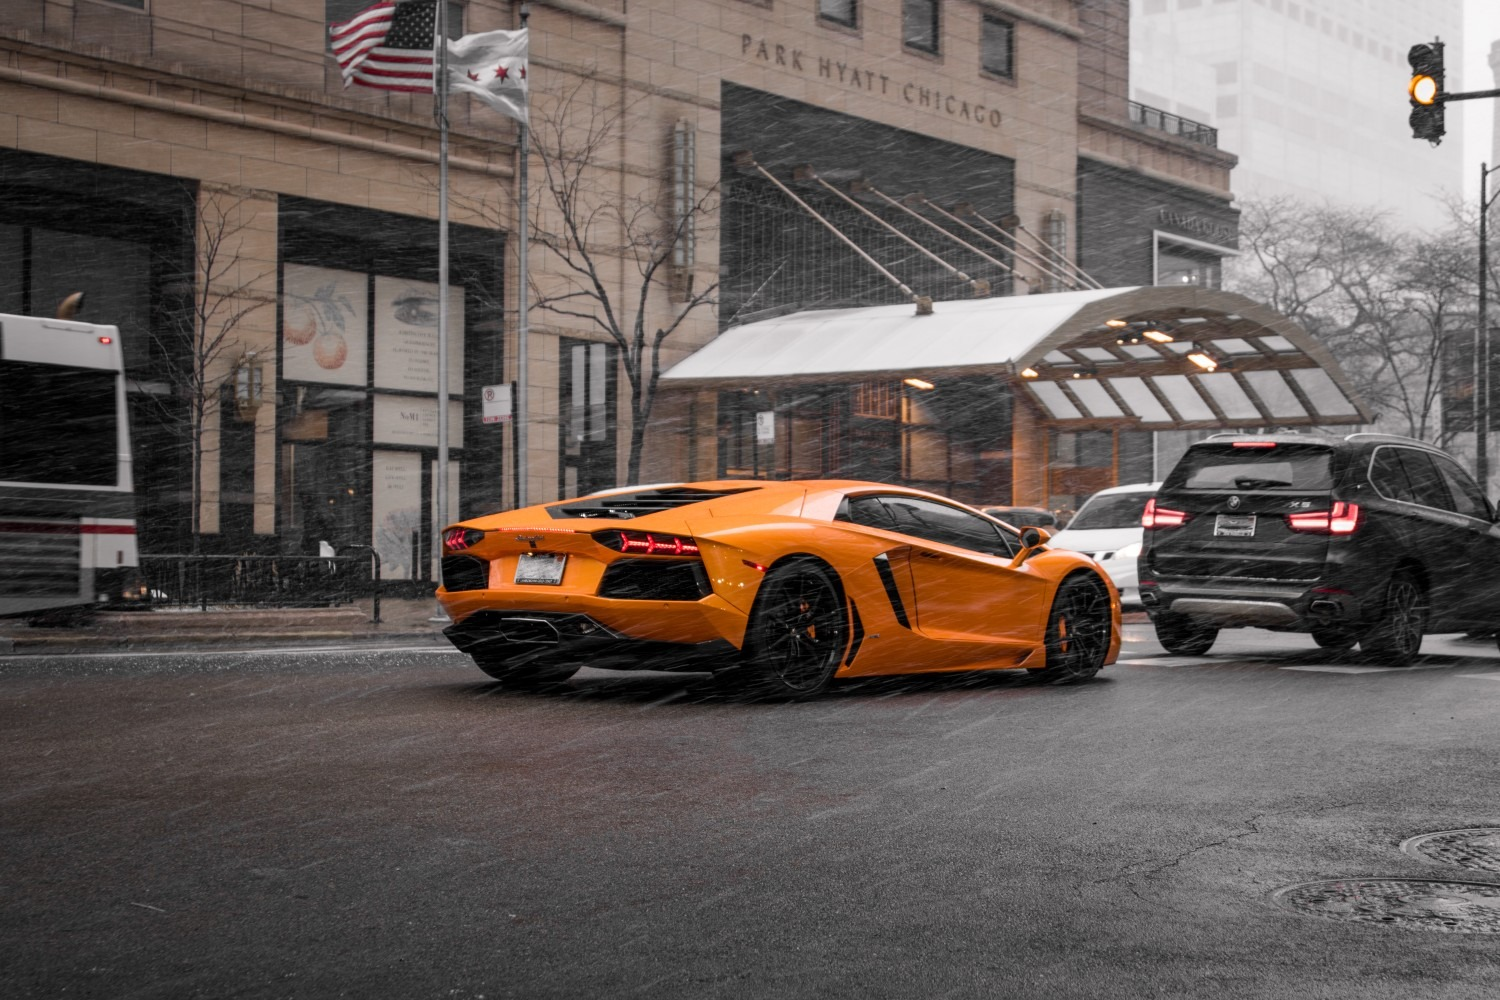 yellow lamborghini aventador car is going  on road. black  car is going front of lamborghini. two flags are stand on side road. rain and wind is coming very fast.